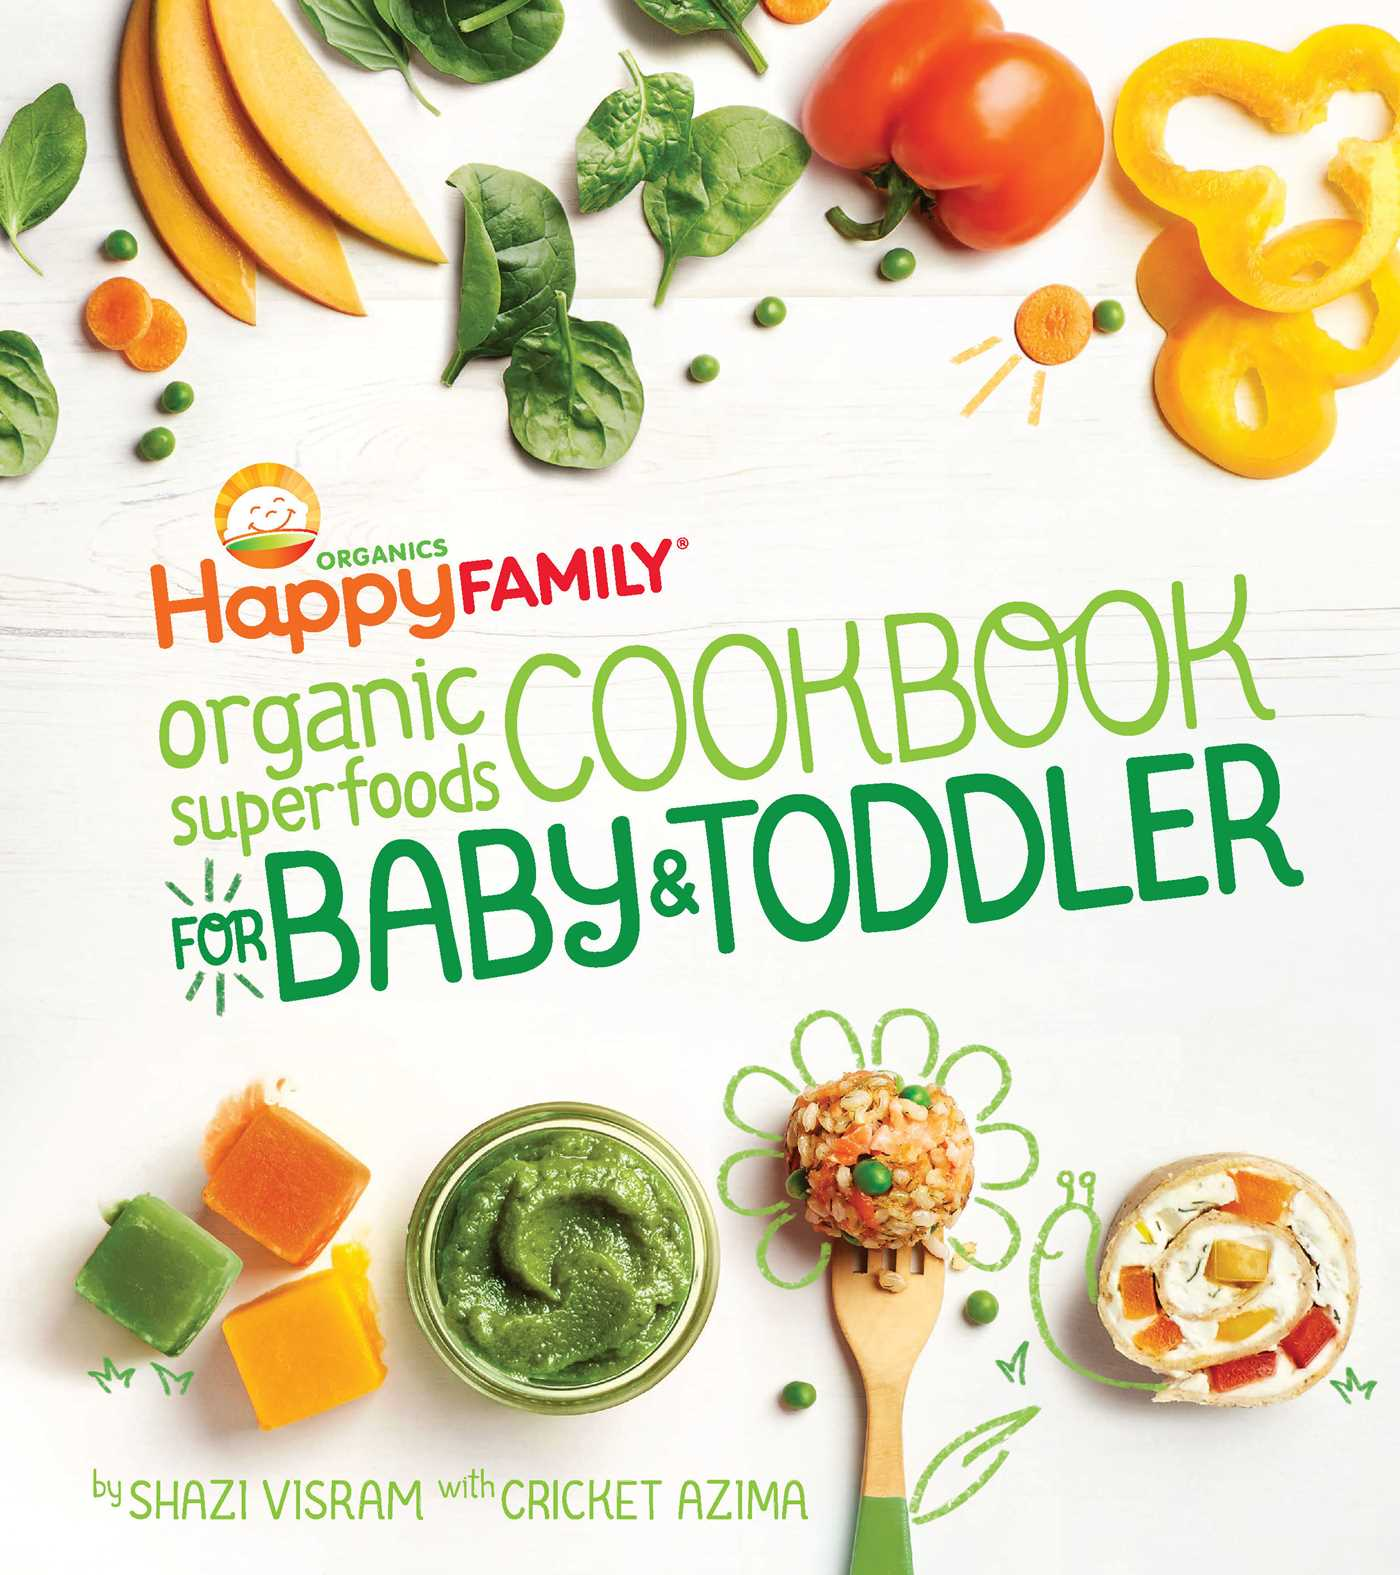 The happy family organic superfoods cookbook for baby toddler the happy family organic superfoods cookbook for baby toddler 9781681880495 hr forumfinder Choice Image